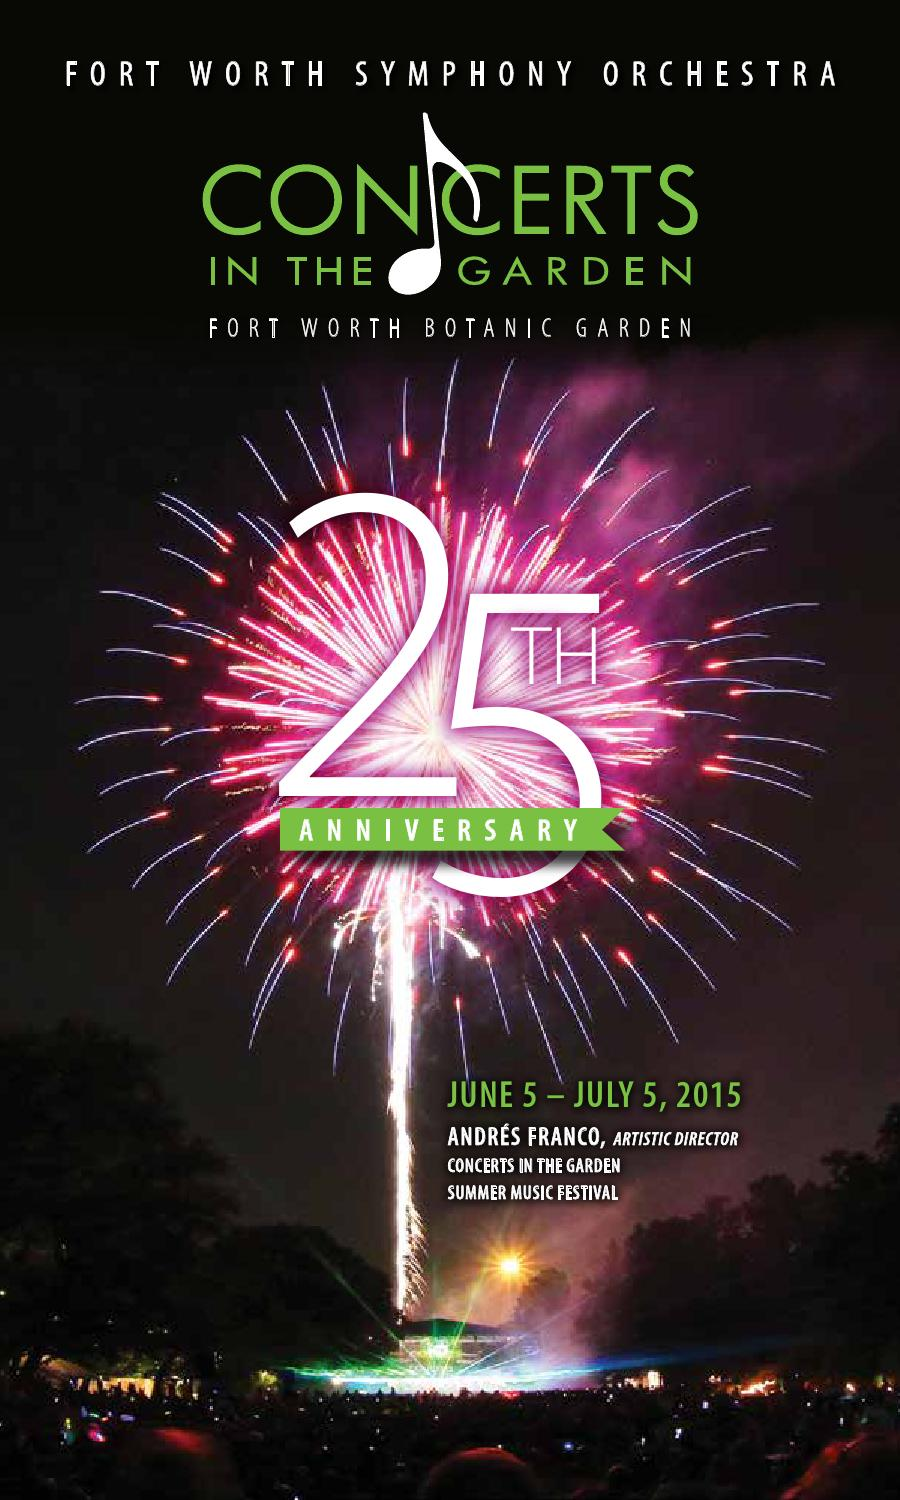 Fwso Concerts In The Garden 2015 Brochure By Fort Worth Symphony Orchestra Issuu